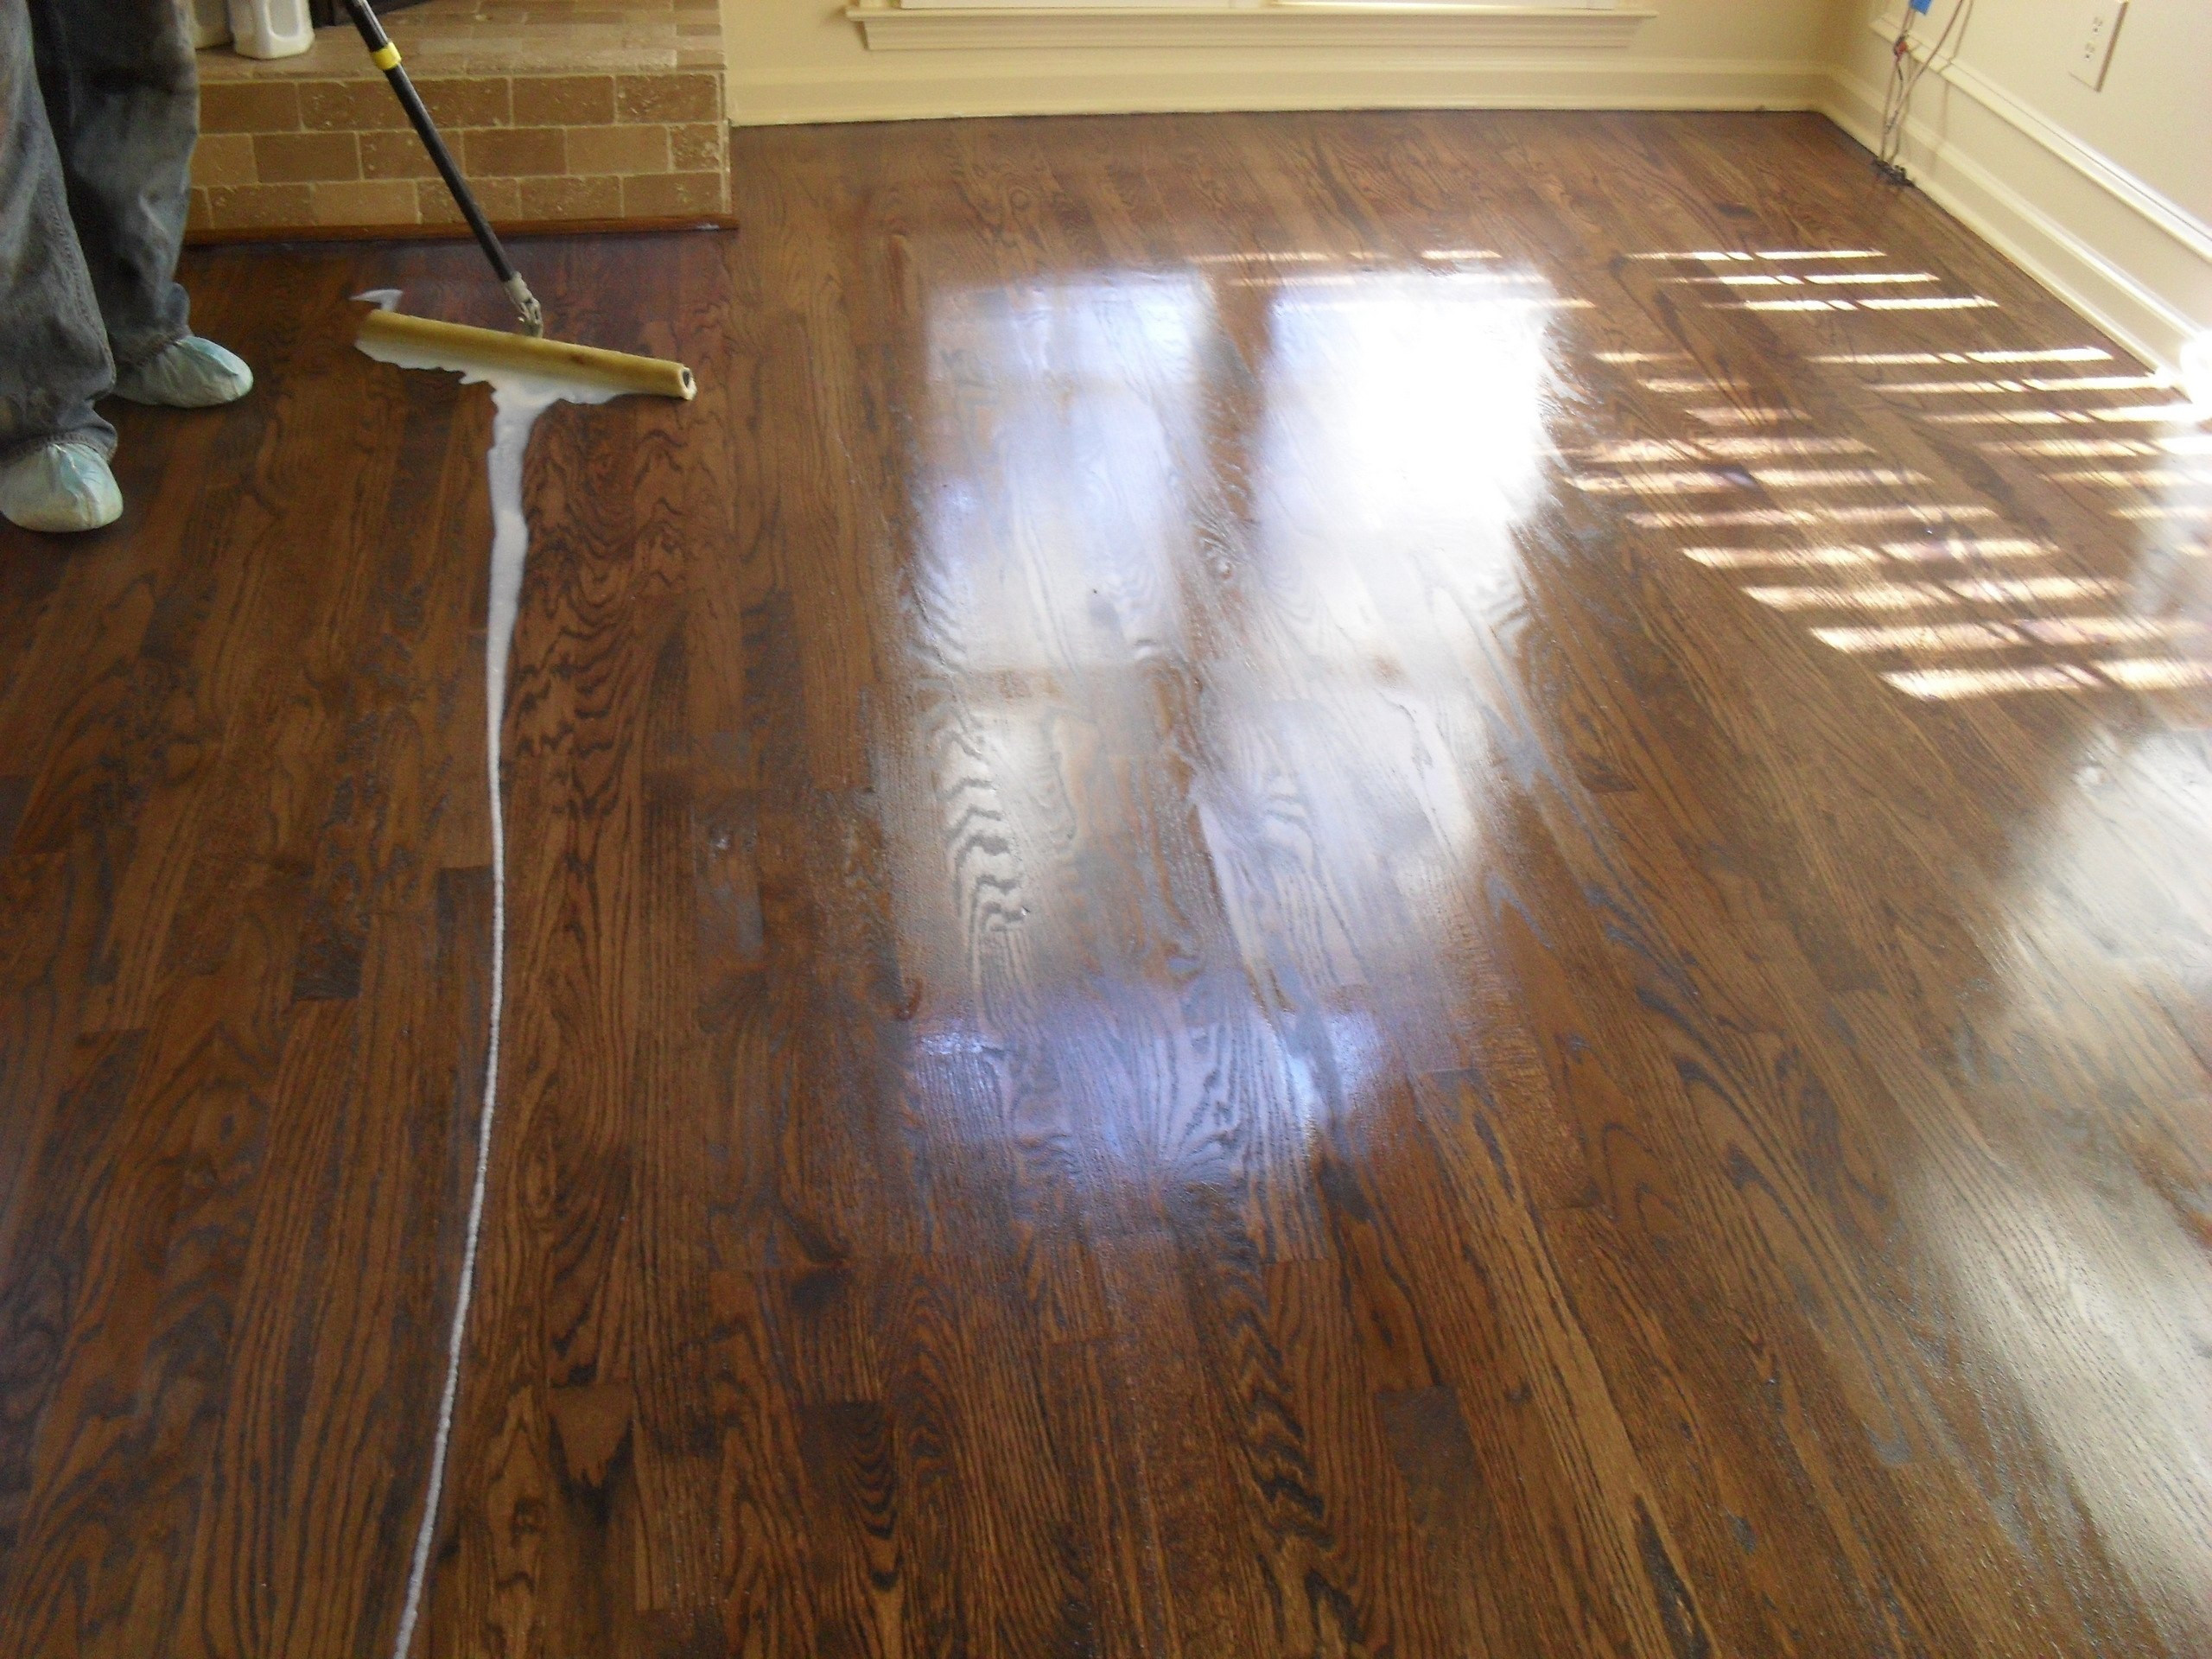 hardwood floor cleaning marietta ga of how to clean wood floors with vinegar floor within how to clean wood floors with vinegar can you refinish hardwood floors podemosleganes